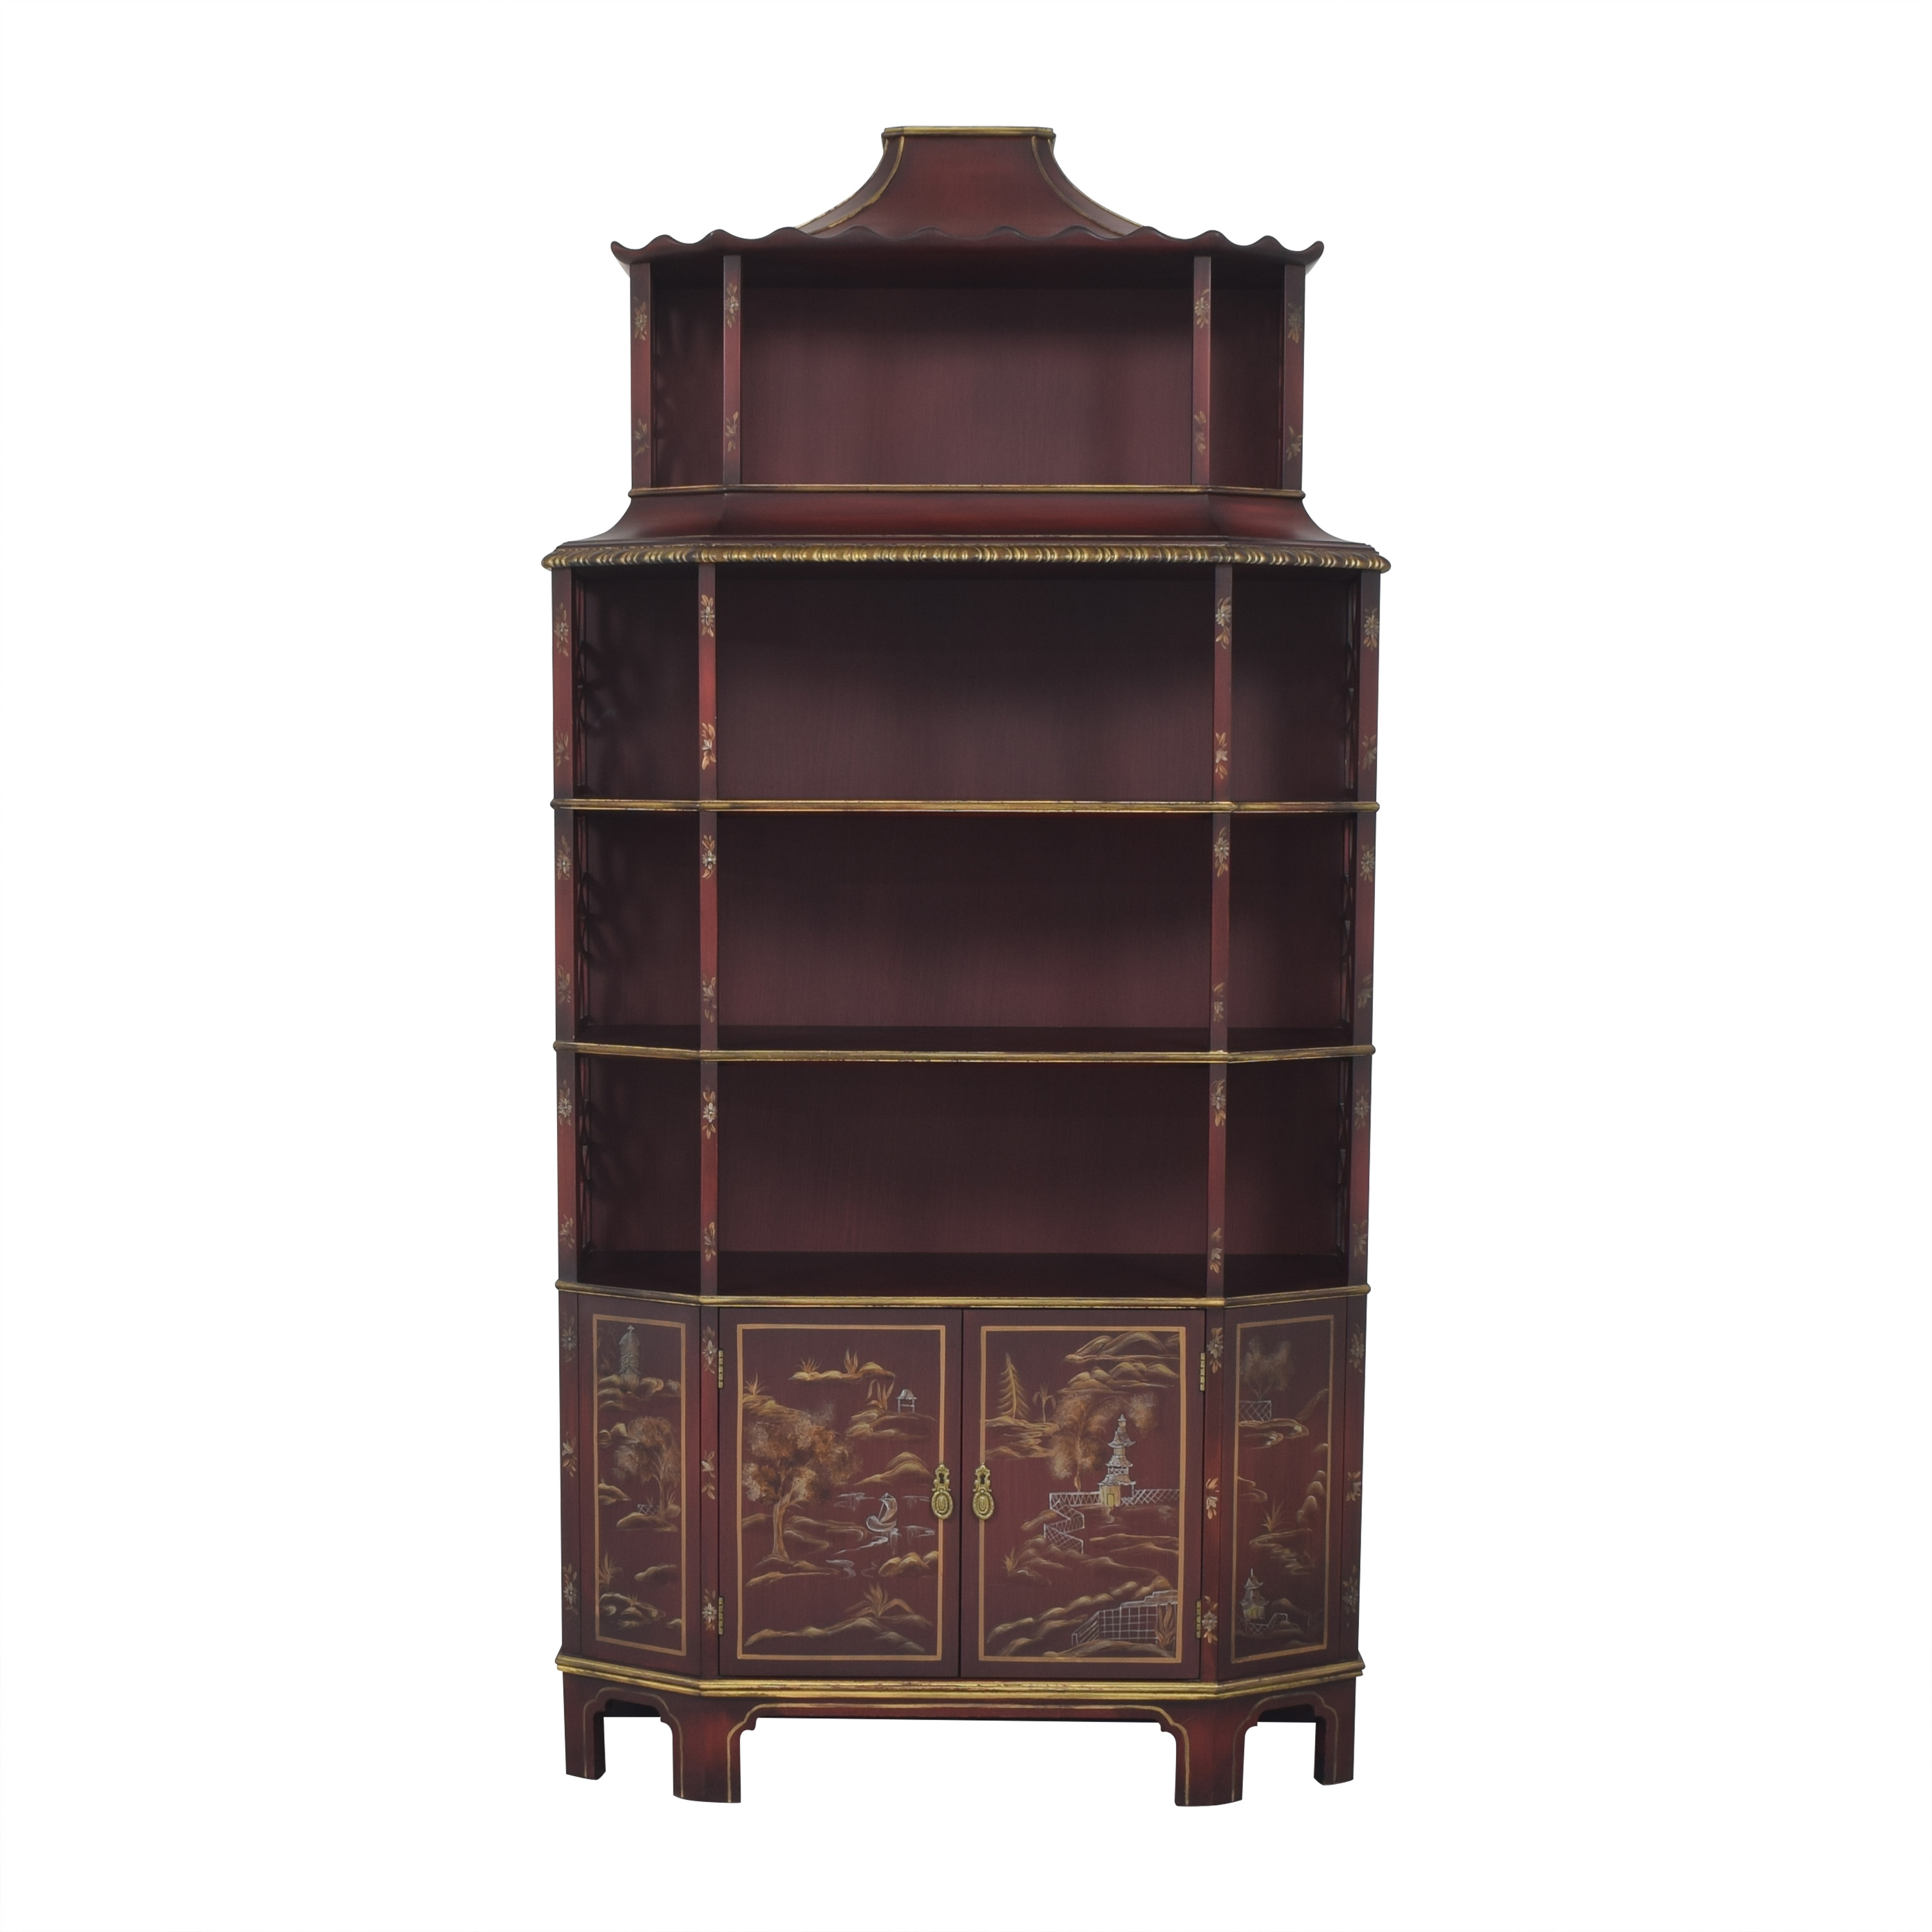 shop John Widdicomb Mario Buatta Collection Chinoiserie Bookcase John Widdicomb Co. Bookcases & Shelving